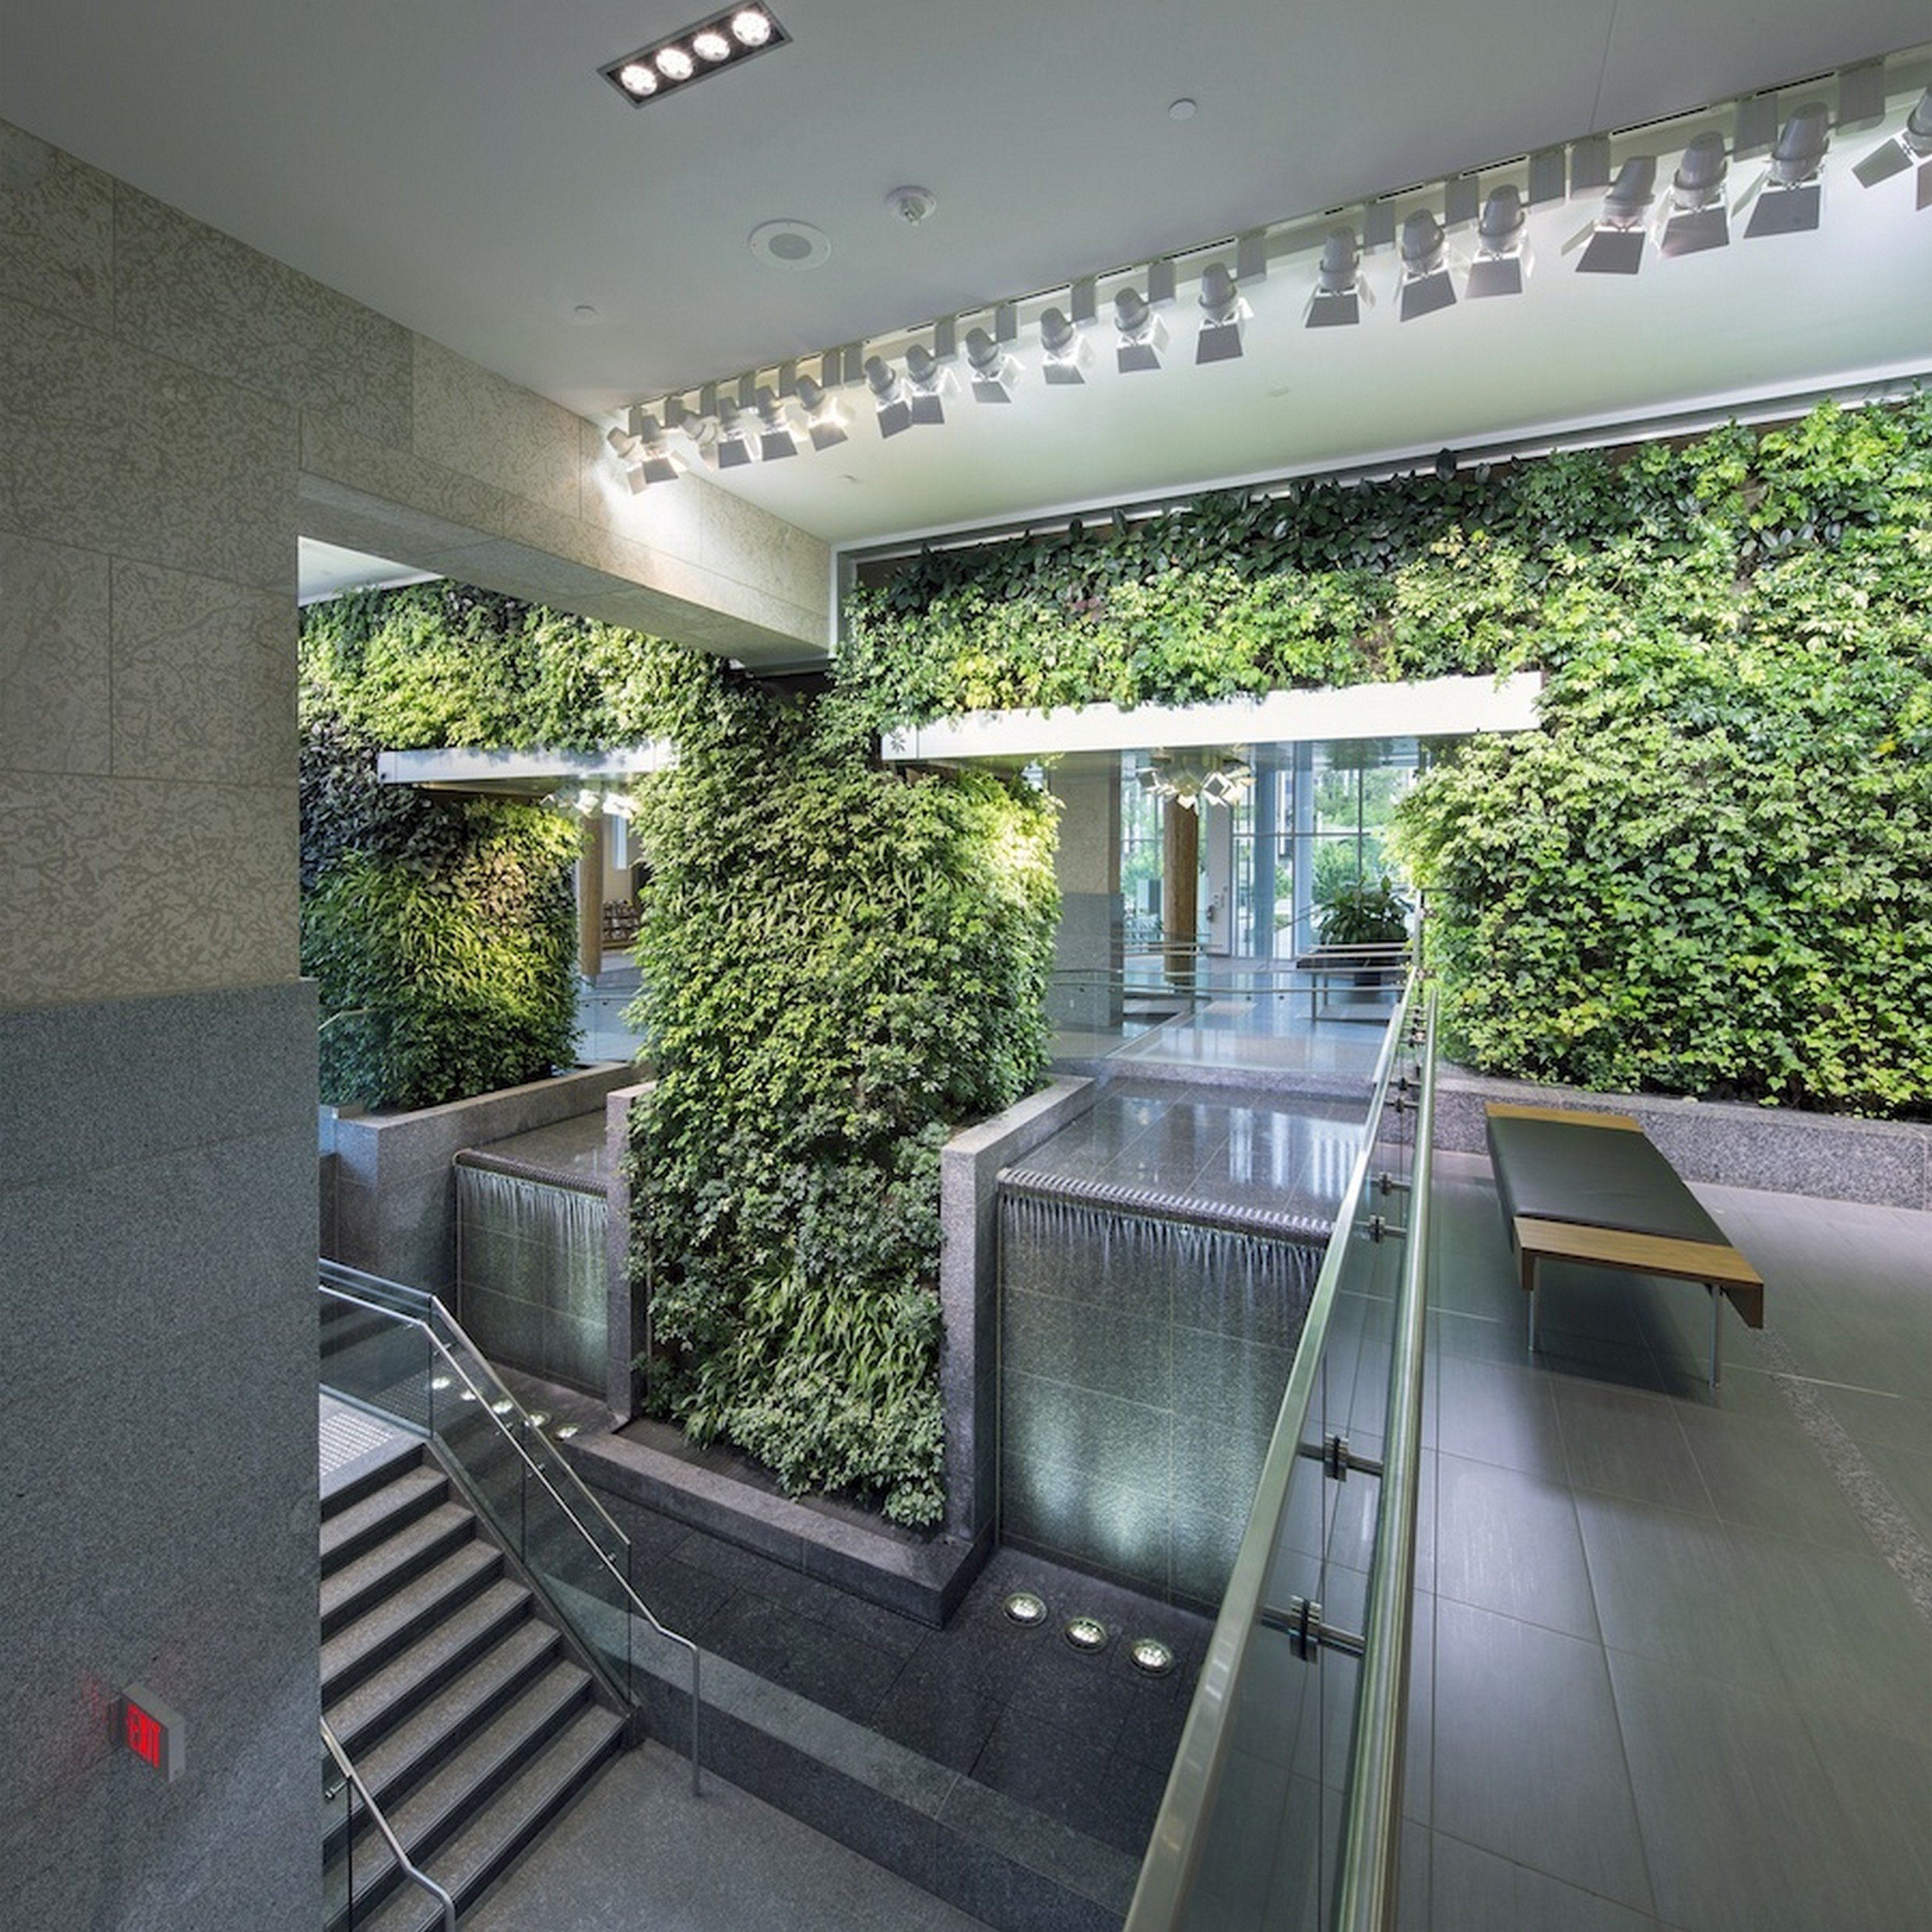 Edmonton federal building living wall biofilter nedlaw - How to make a living wall ...